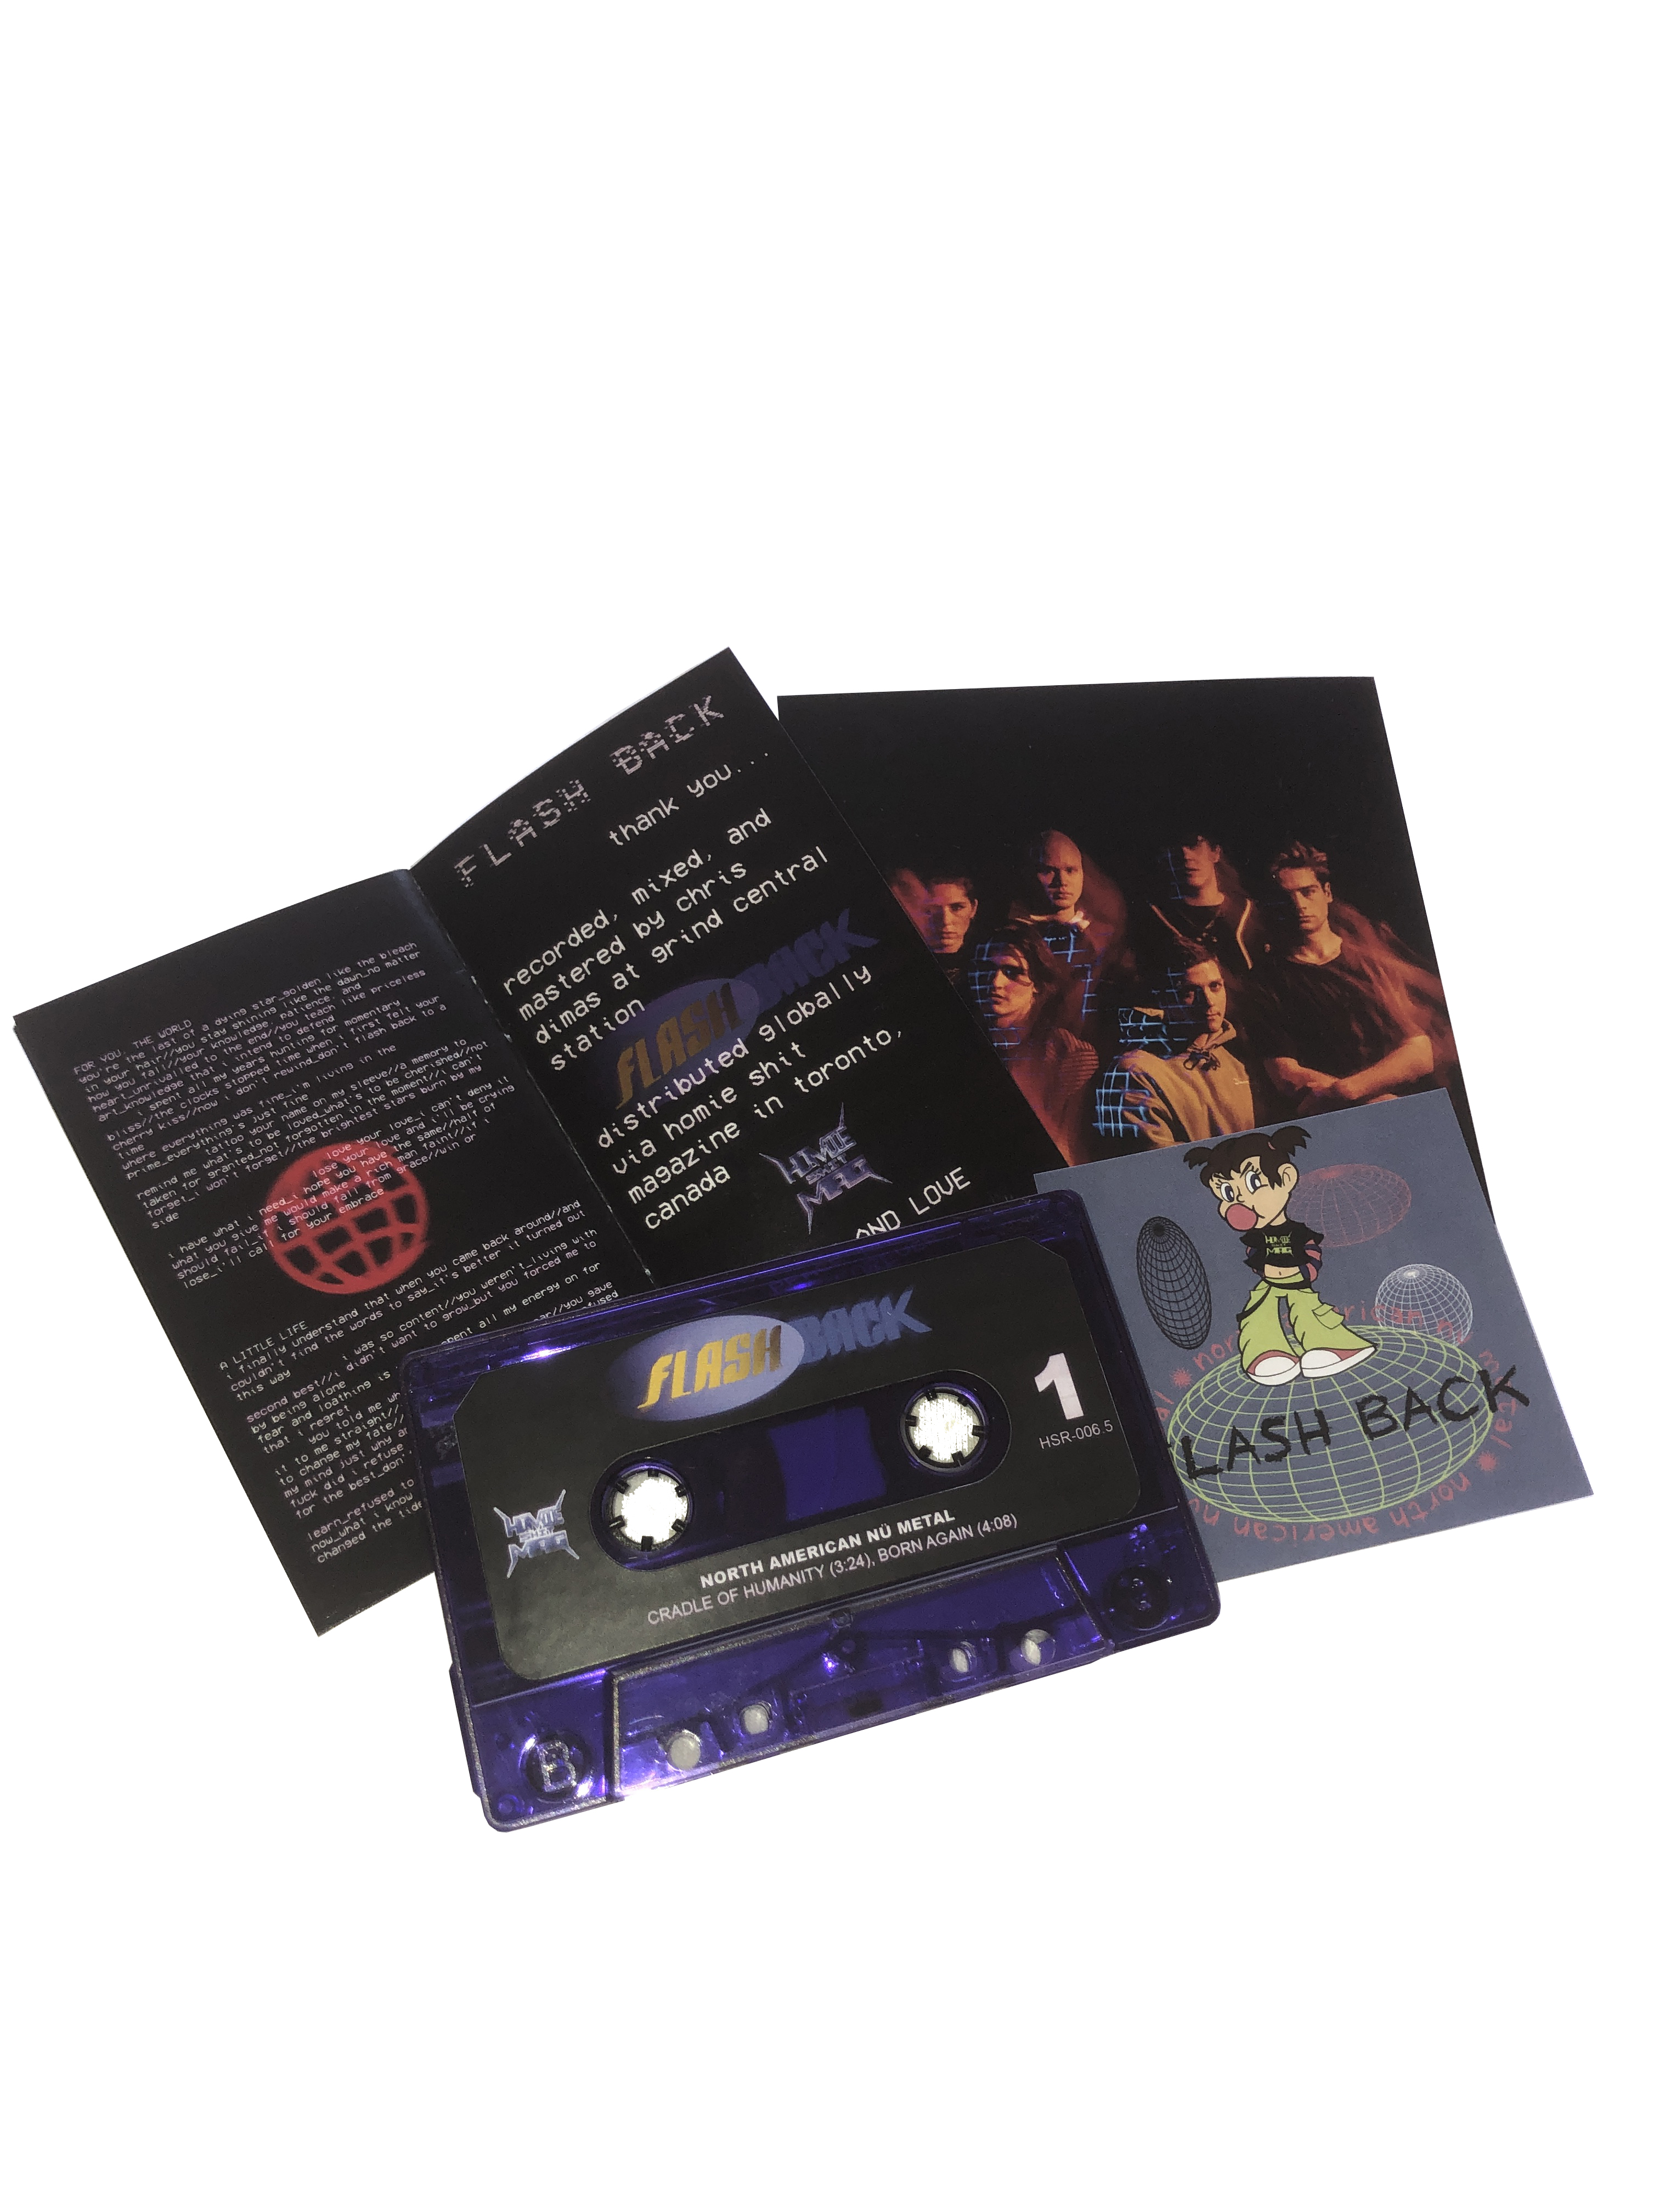 Flash Back - North American Nü Metal Cassette